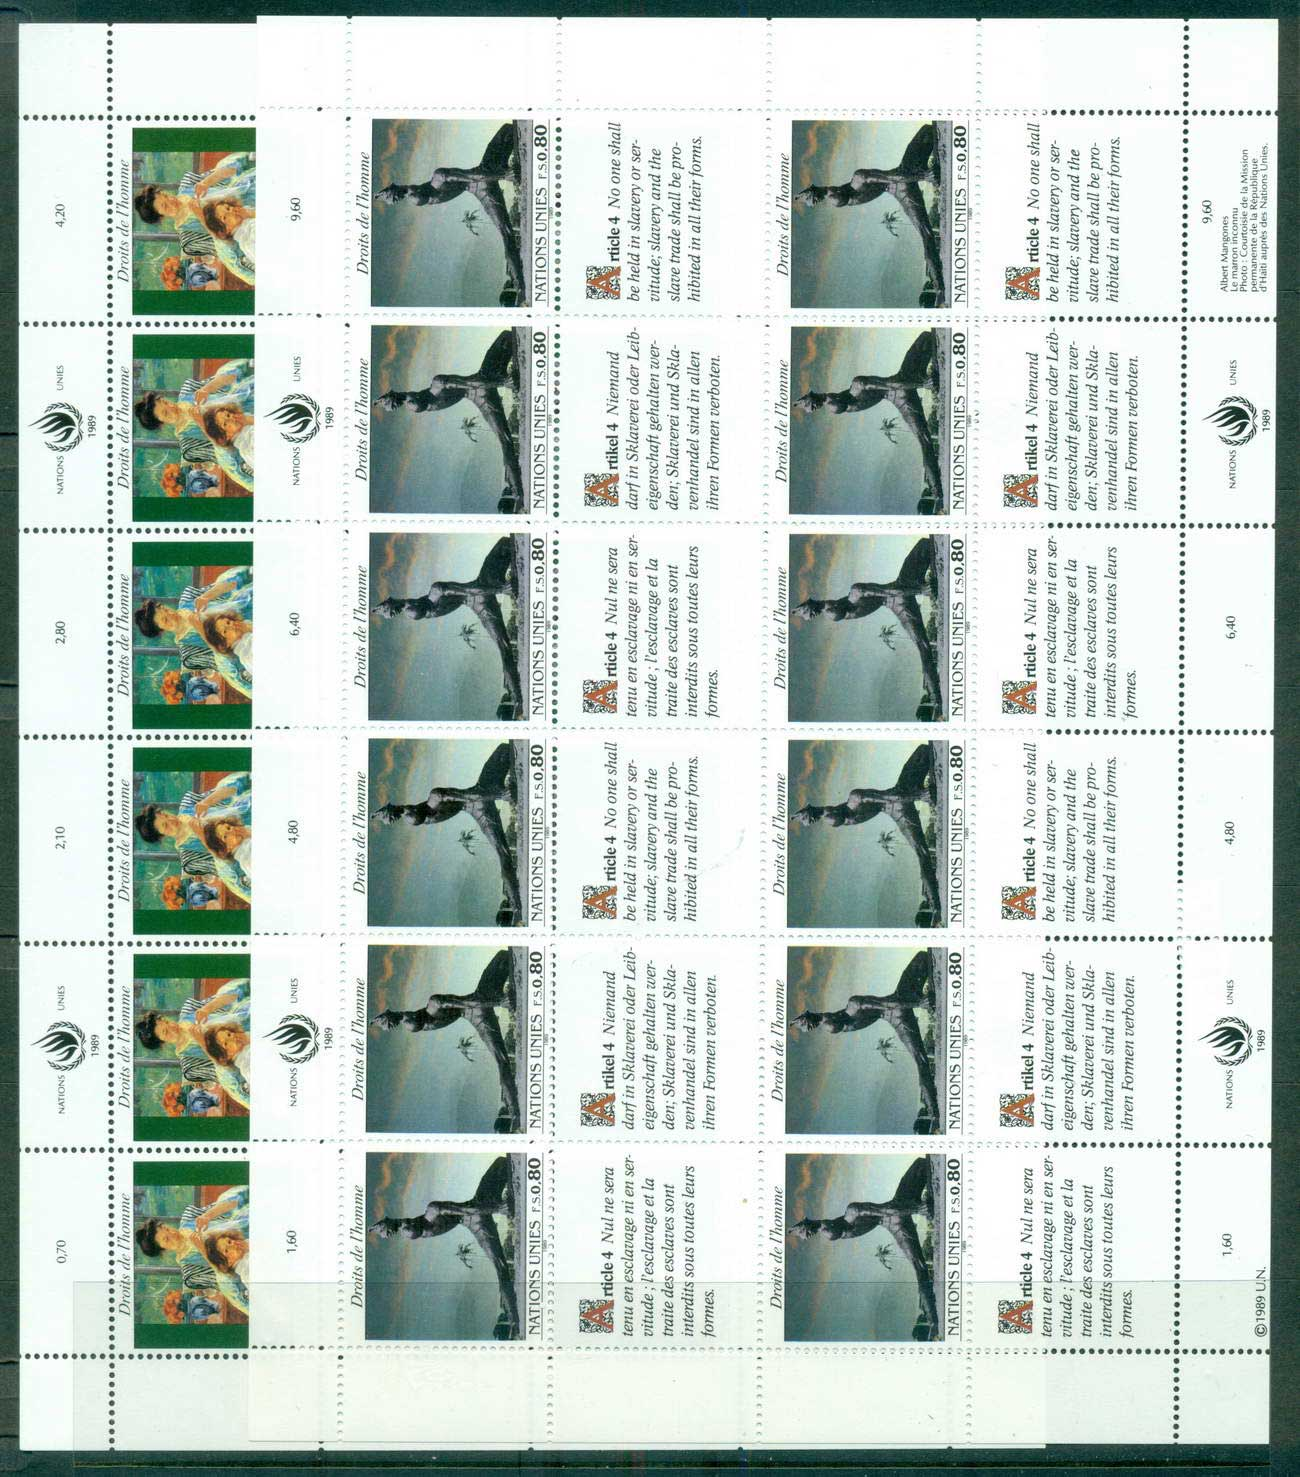 UN Geneva 1989 Human Rights 2x Sheets CTO lot66064